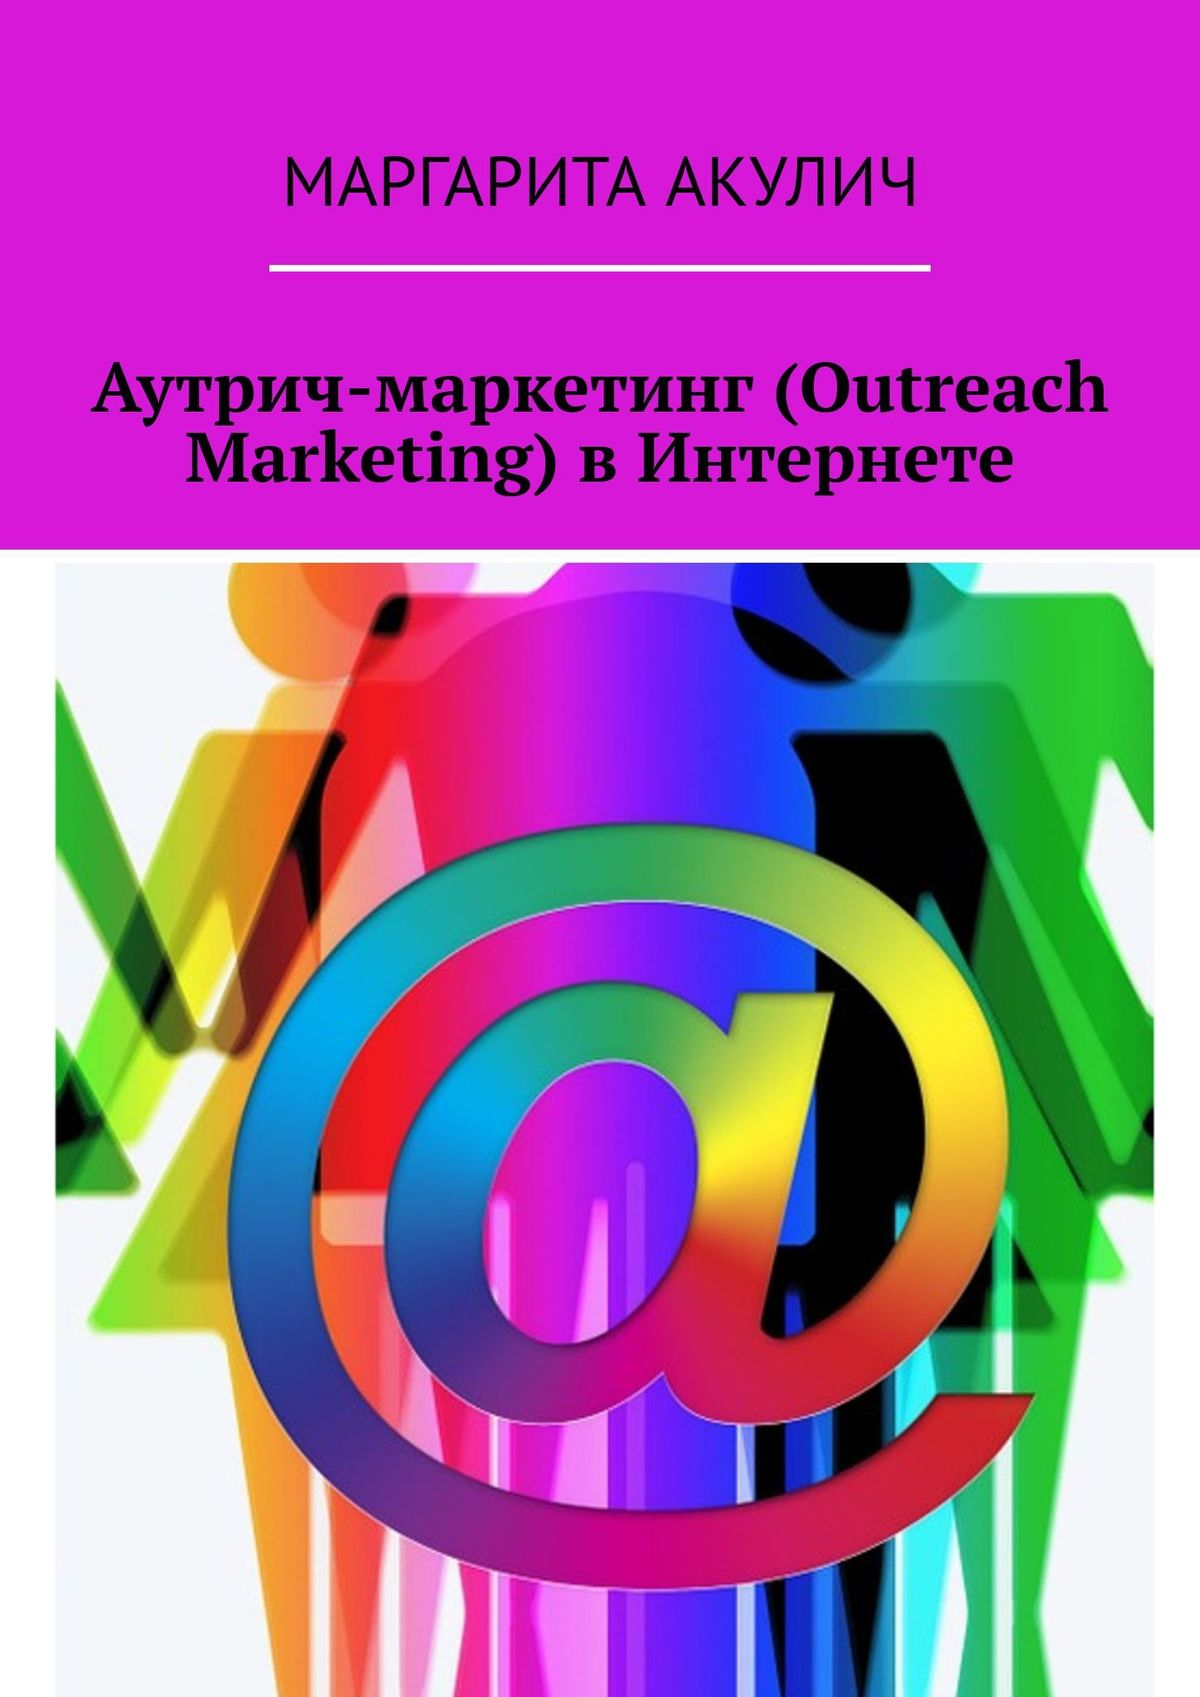 Маргарита Акулич Аутрич-маркетинг (Outreach Marketing) в Интернете маргарита акулич контекстная реклама и маркетинг контента